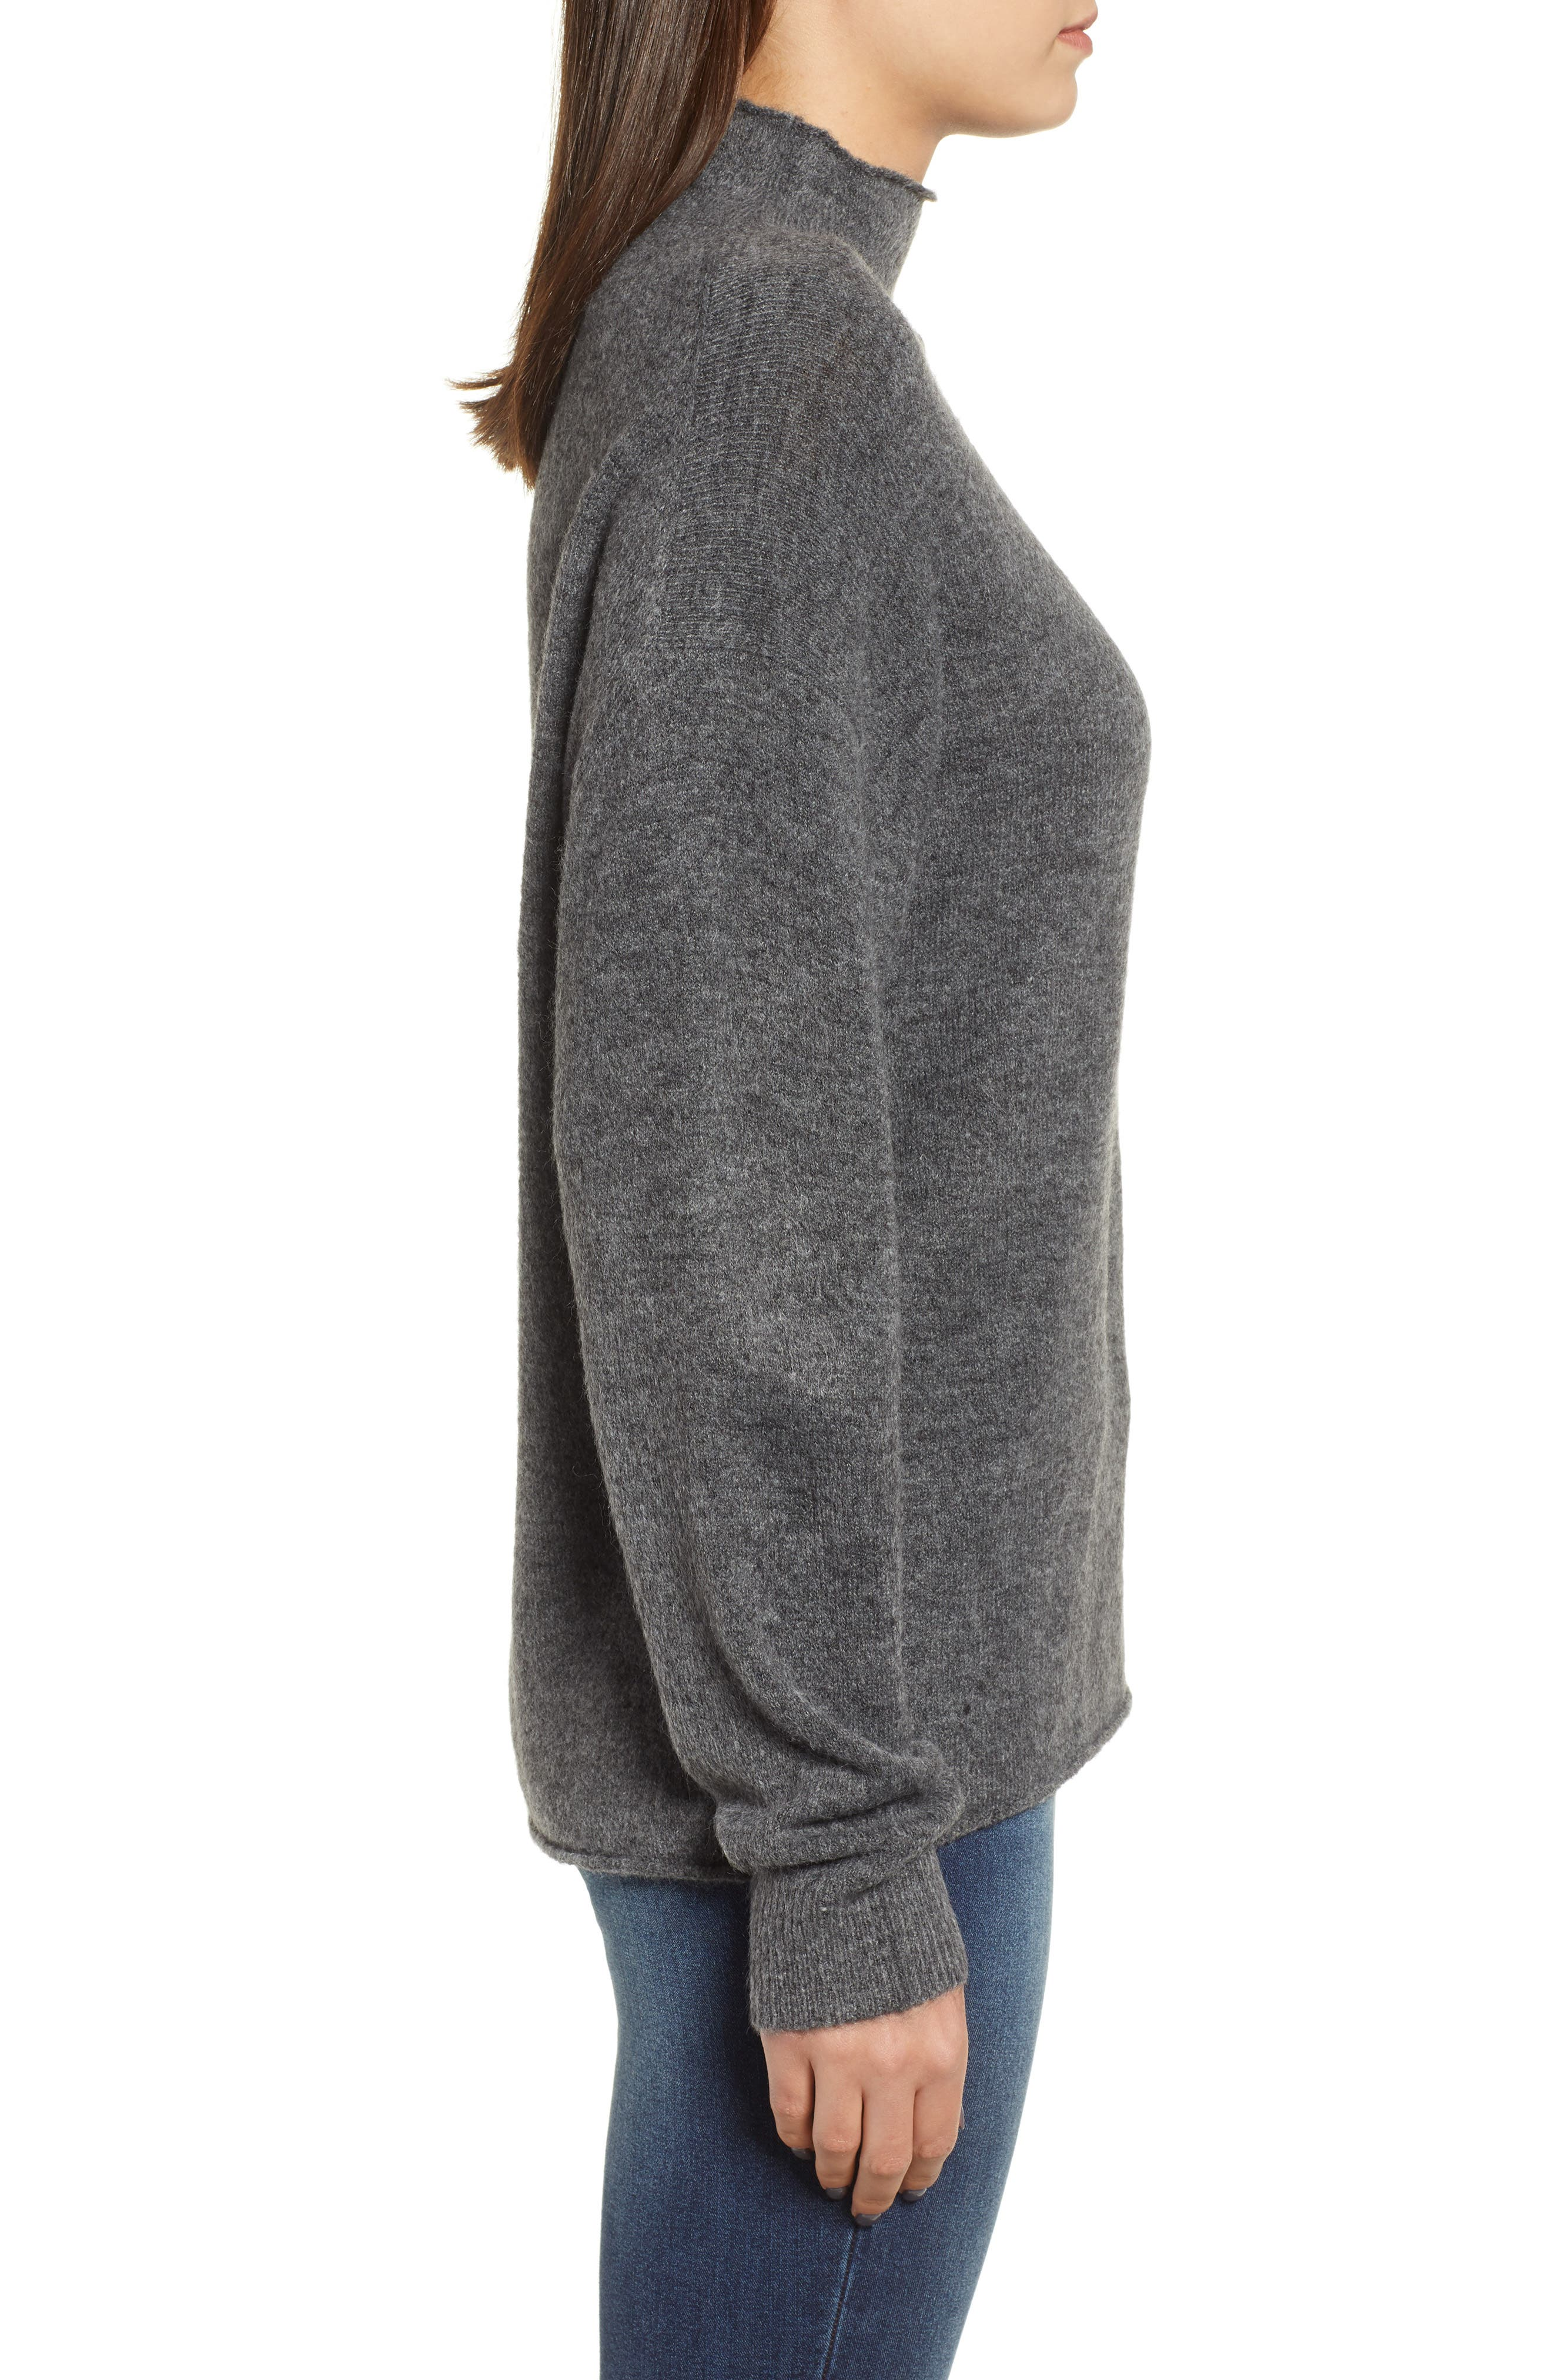 Cozy Mock Neck Sweater,                             Alternate thumbnail 3, color,                             GREY MEDIUM CHARCOAL HEATHER